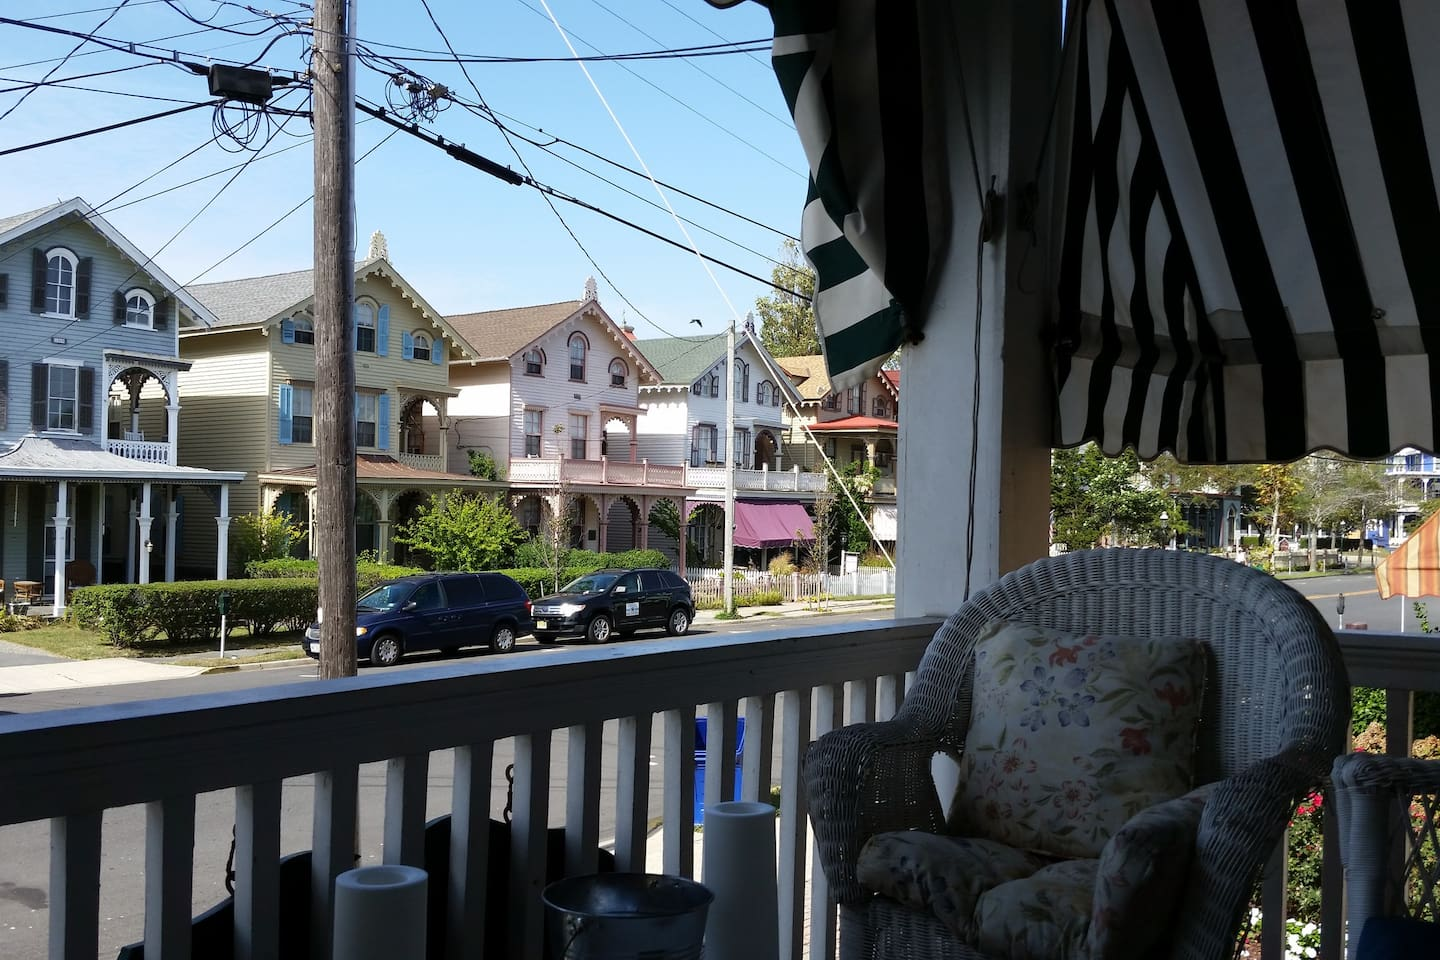 Enjoy Cape May's Victorian splendor from the porch